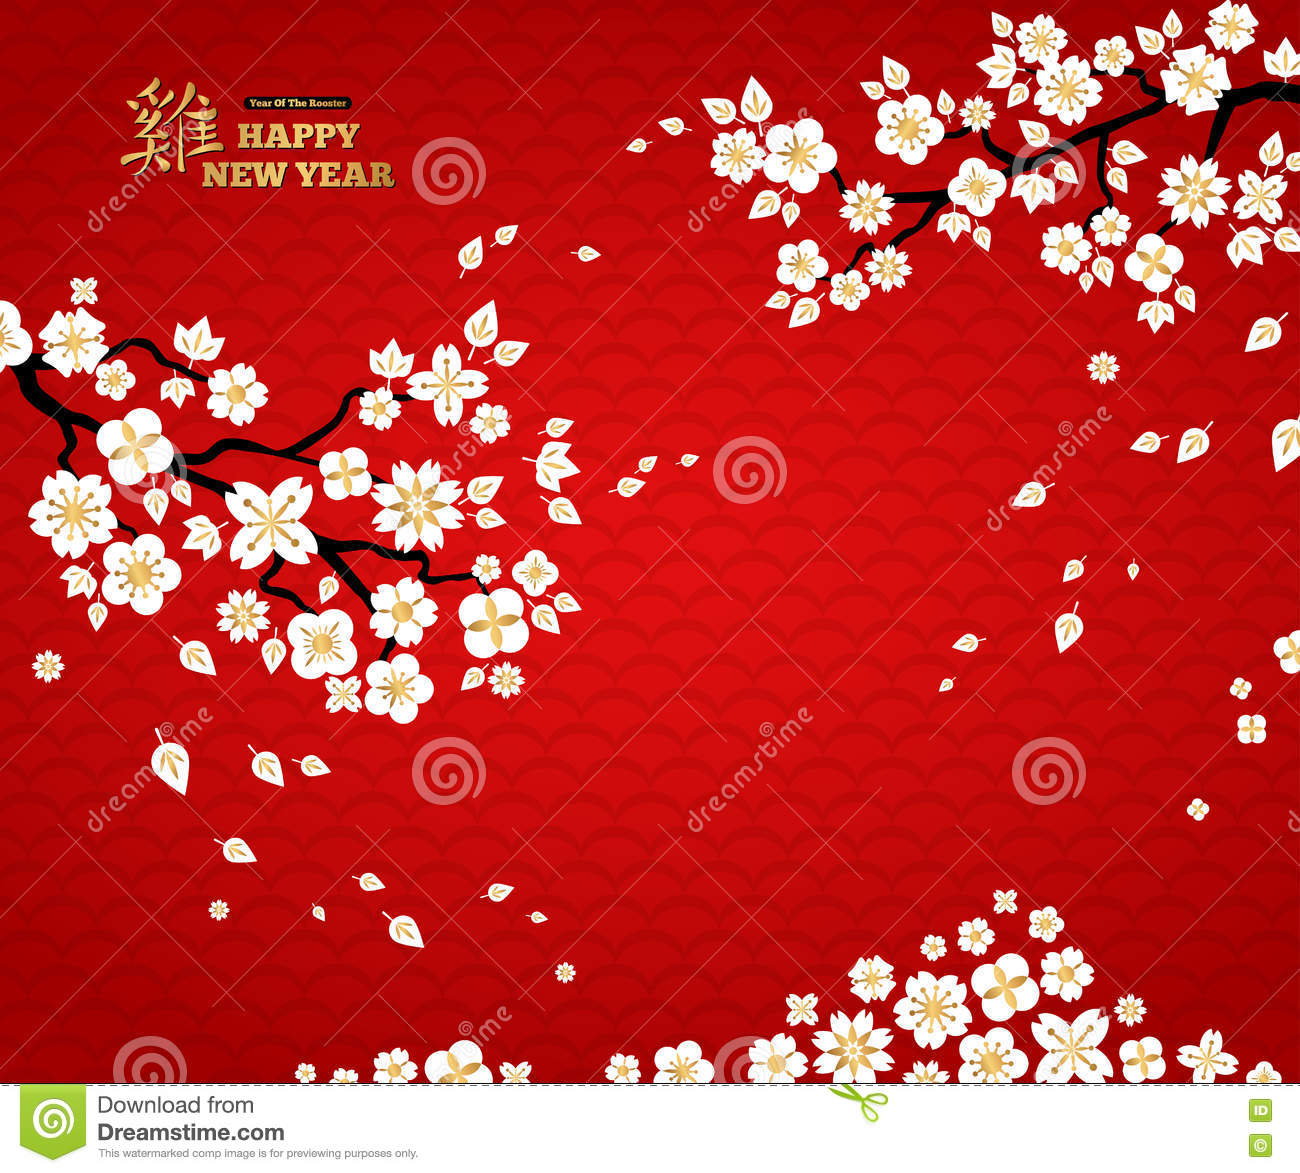 Snap Chinese New Year Greeting Card Background Royalty Free